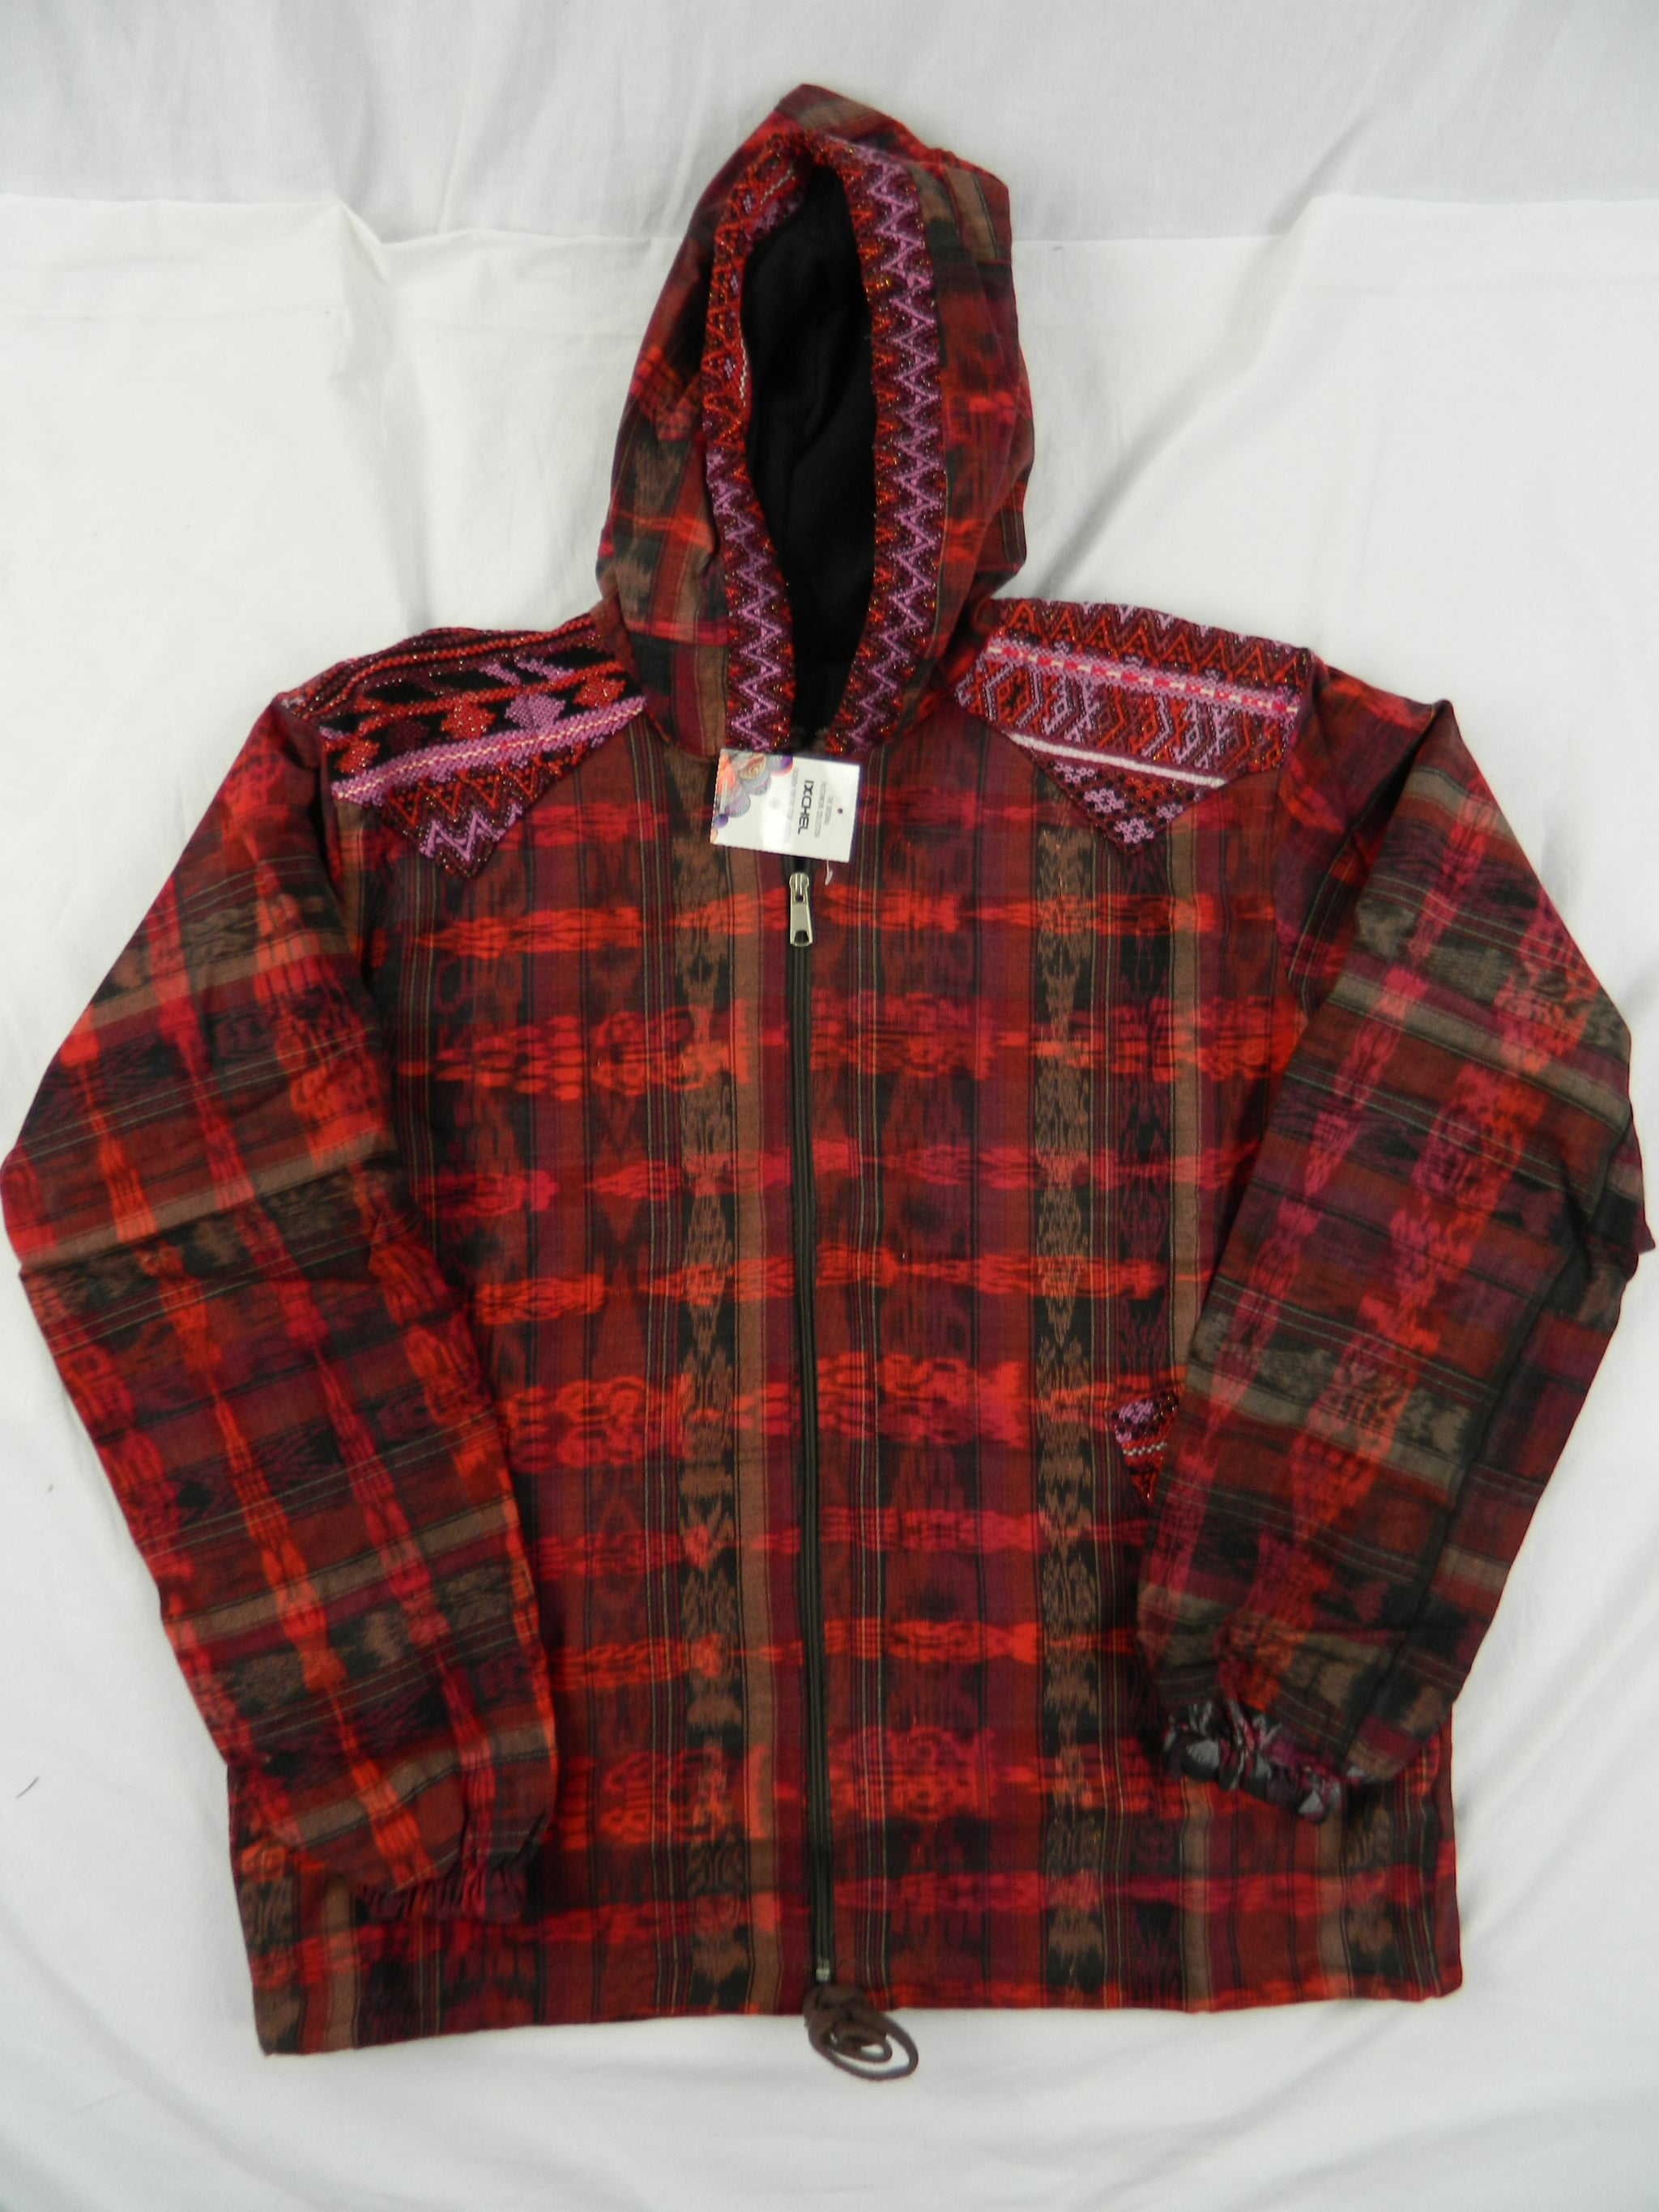 Hand-Woven Hooded Jacket with Hand-Brocaded Accents